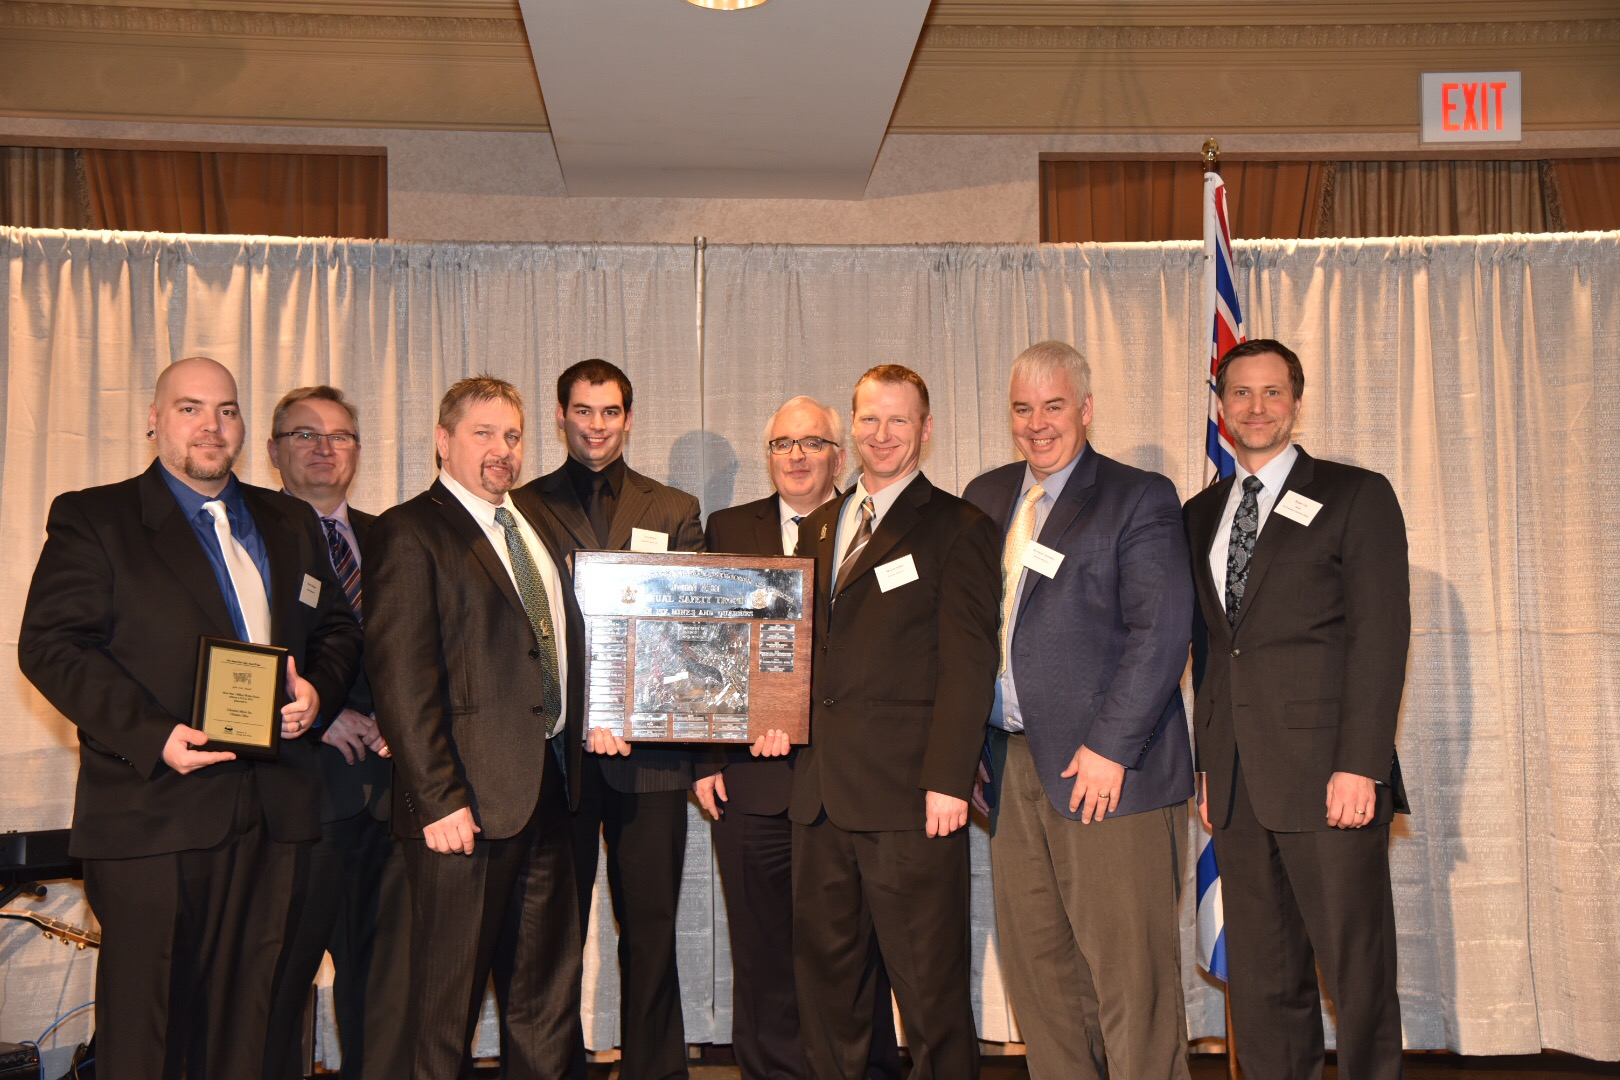 Gibraltar Mine - Presented by the Ministry of Energy and Mines, this prestigious award goes to the mining operation in British Columbia with the lowest injury-frequency rate that has worked at least one million hours during the year. This is the second year in a row that Gibraltar has been given this award, having worked over 1 million hours during 2015 with zero lost time accidents.